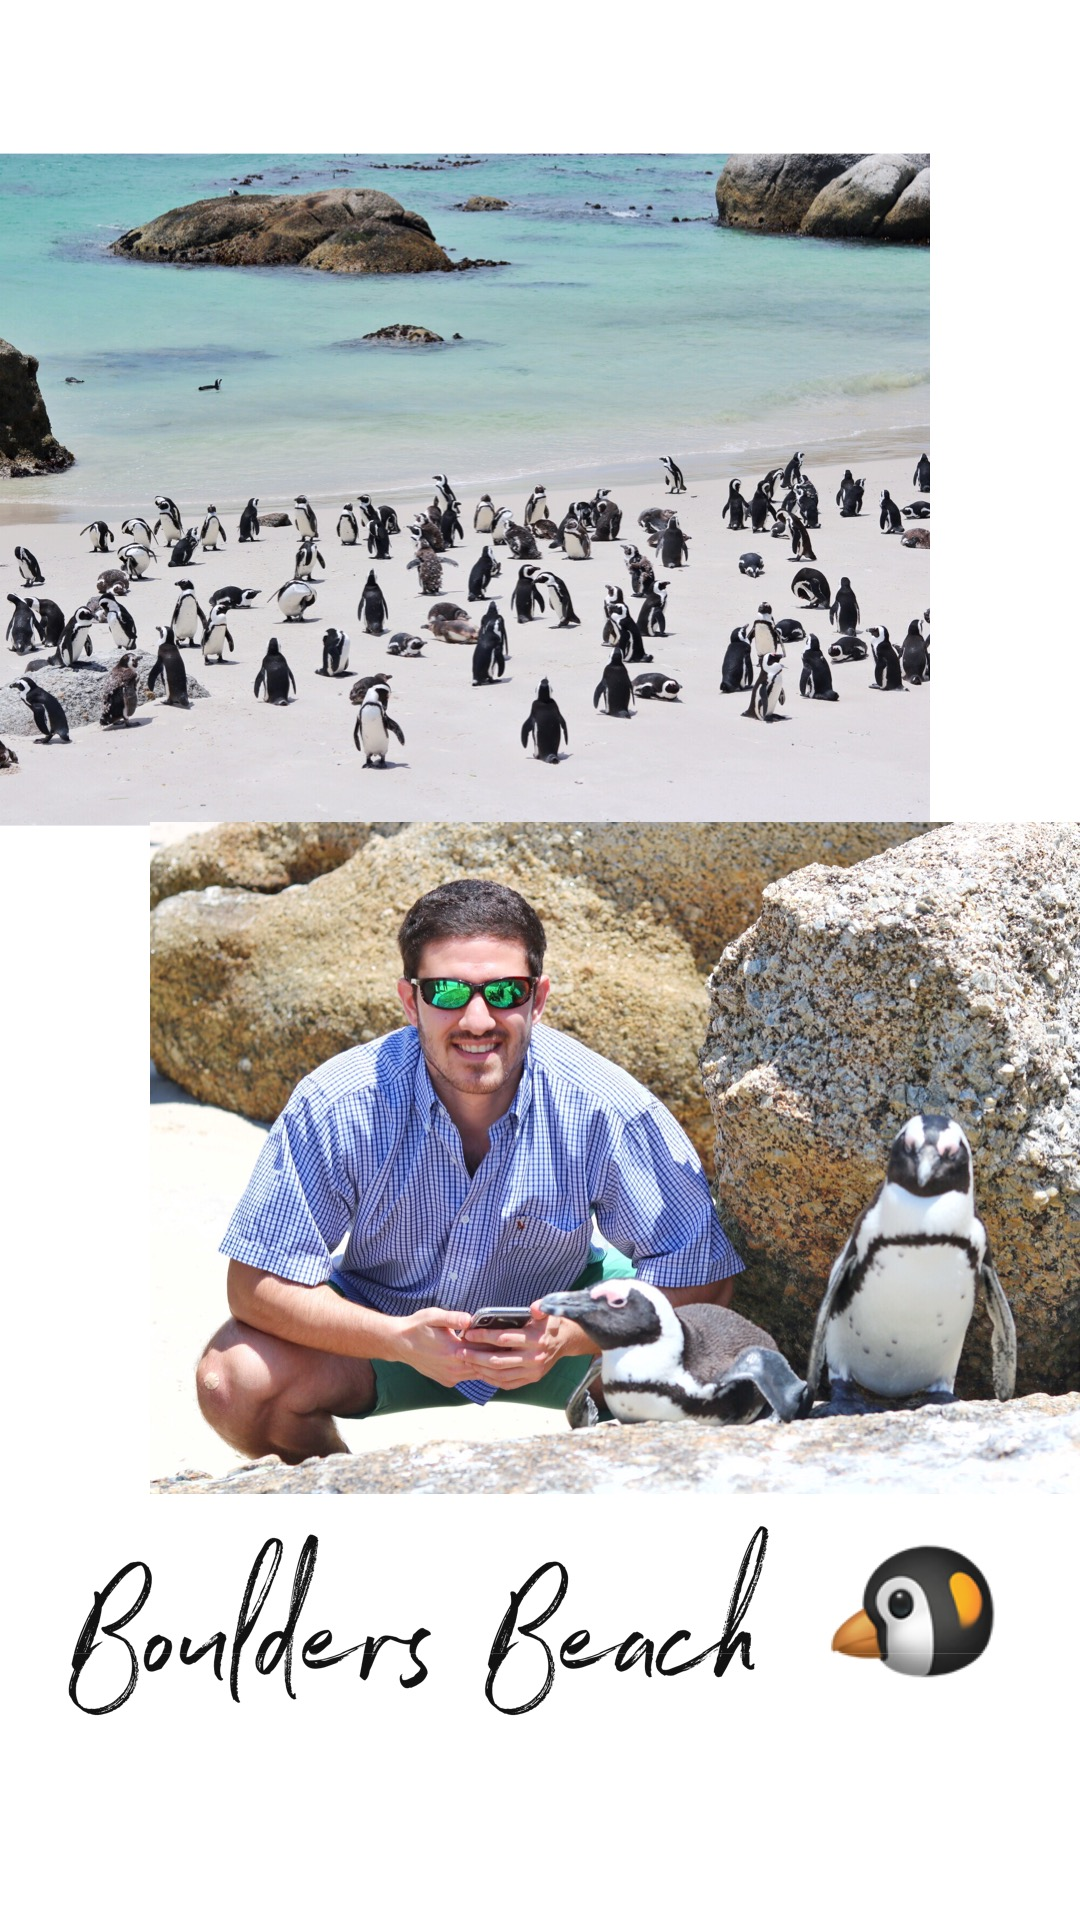 Wanna Swim with the Penguins? - Very important tip that you may not realize when you look up Boulder's Beach on Instagram - there are two different spots to view the penguins! Top photo is taken from the viewing deck where there are hundreds of penguins, but you can't get near them due to a fenced in deck. That's where most of them stay and their burrows/homes are. Bottom photo - a five minute drive from the viewing deck. This is where people can swim with the penguins and you can actually get close to the penguins.